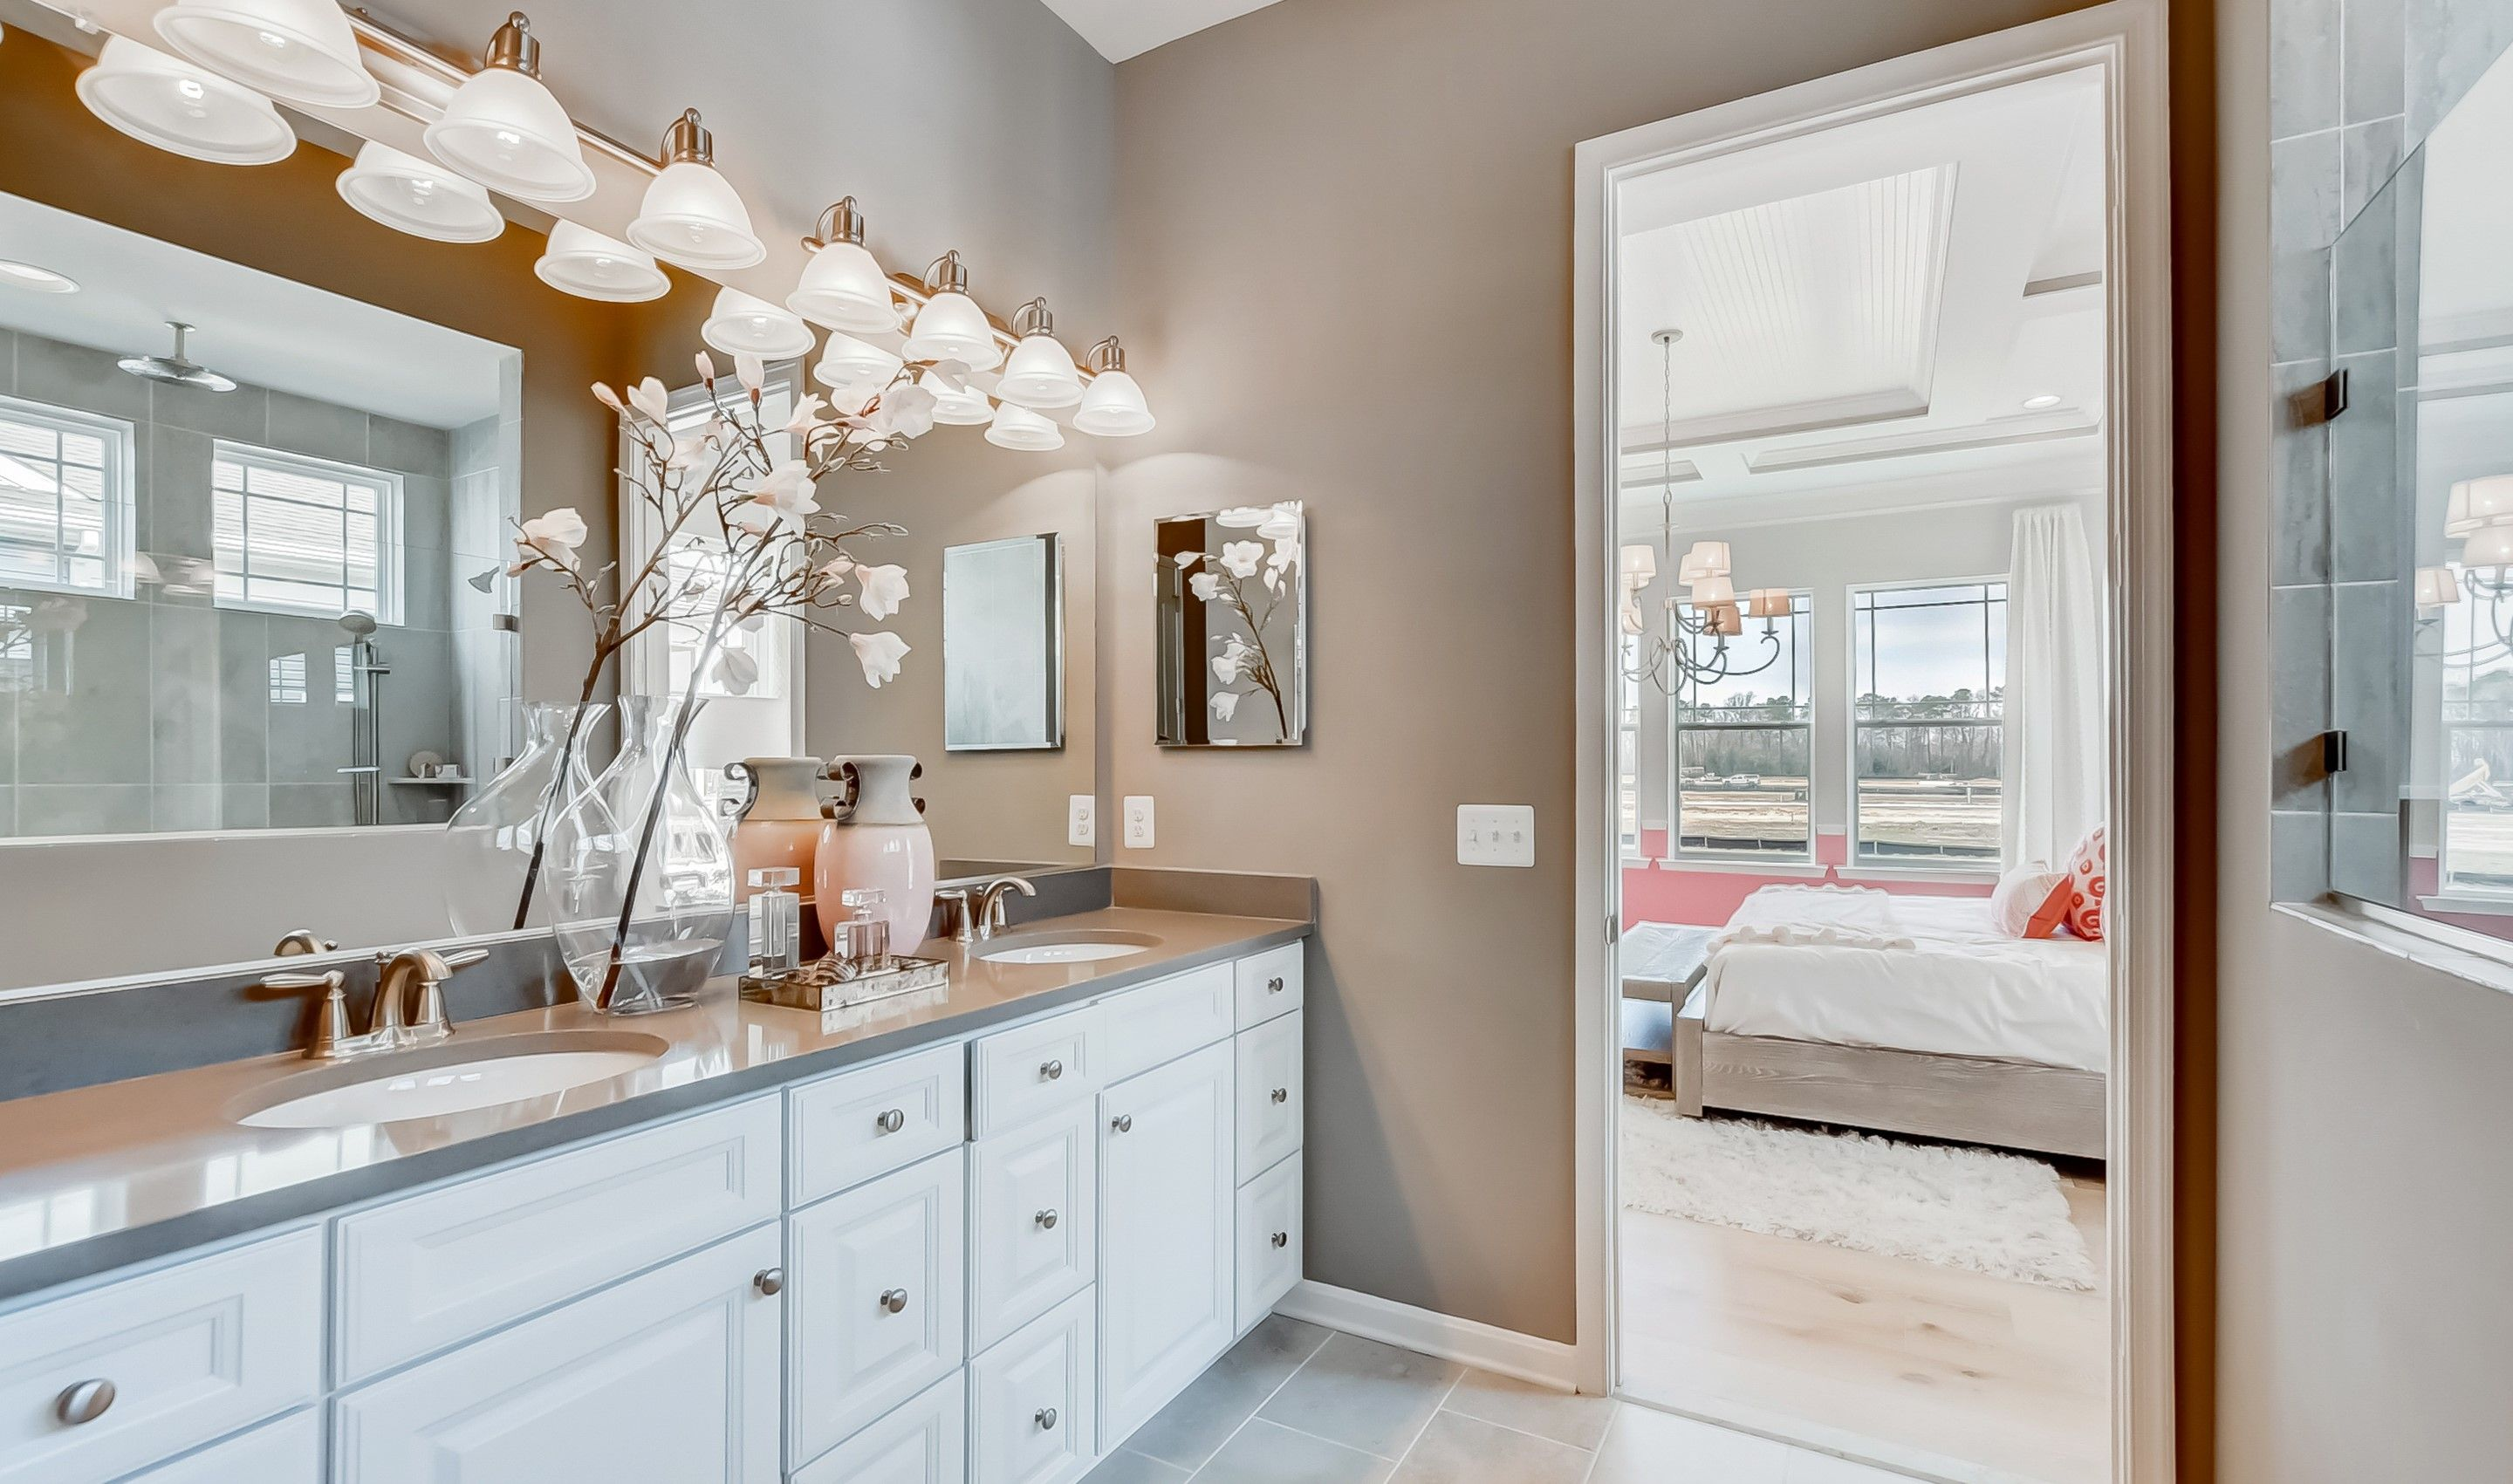 Bathroom featured in the Mont Blanc By K. Hovnanian's® Four Seasons in Sussex, DE